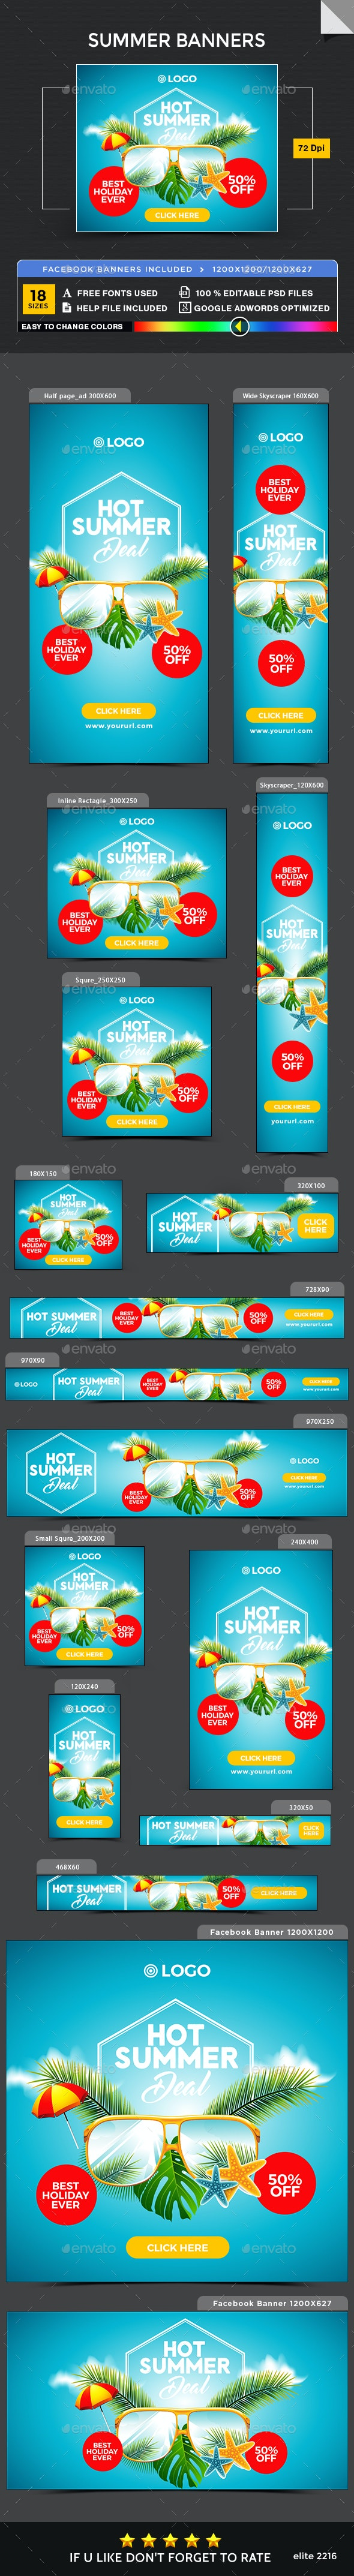 Summer Banners - Image Included - Banners & Ads Web Elements